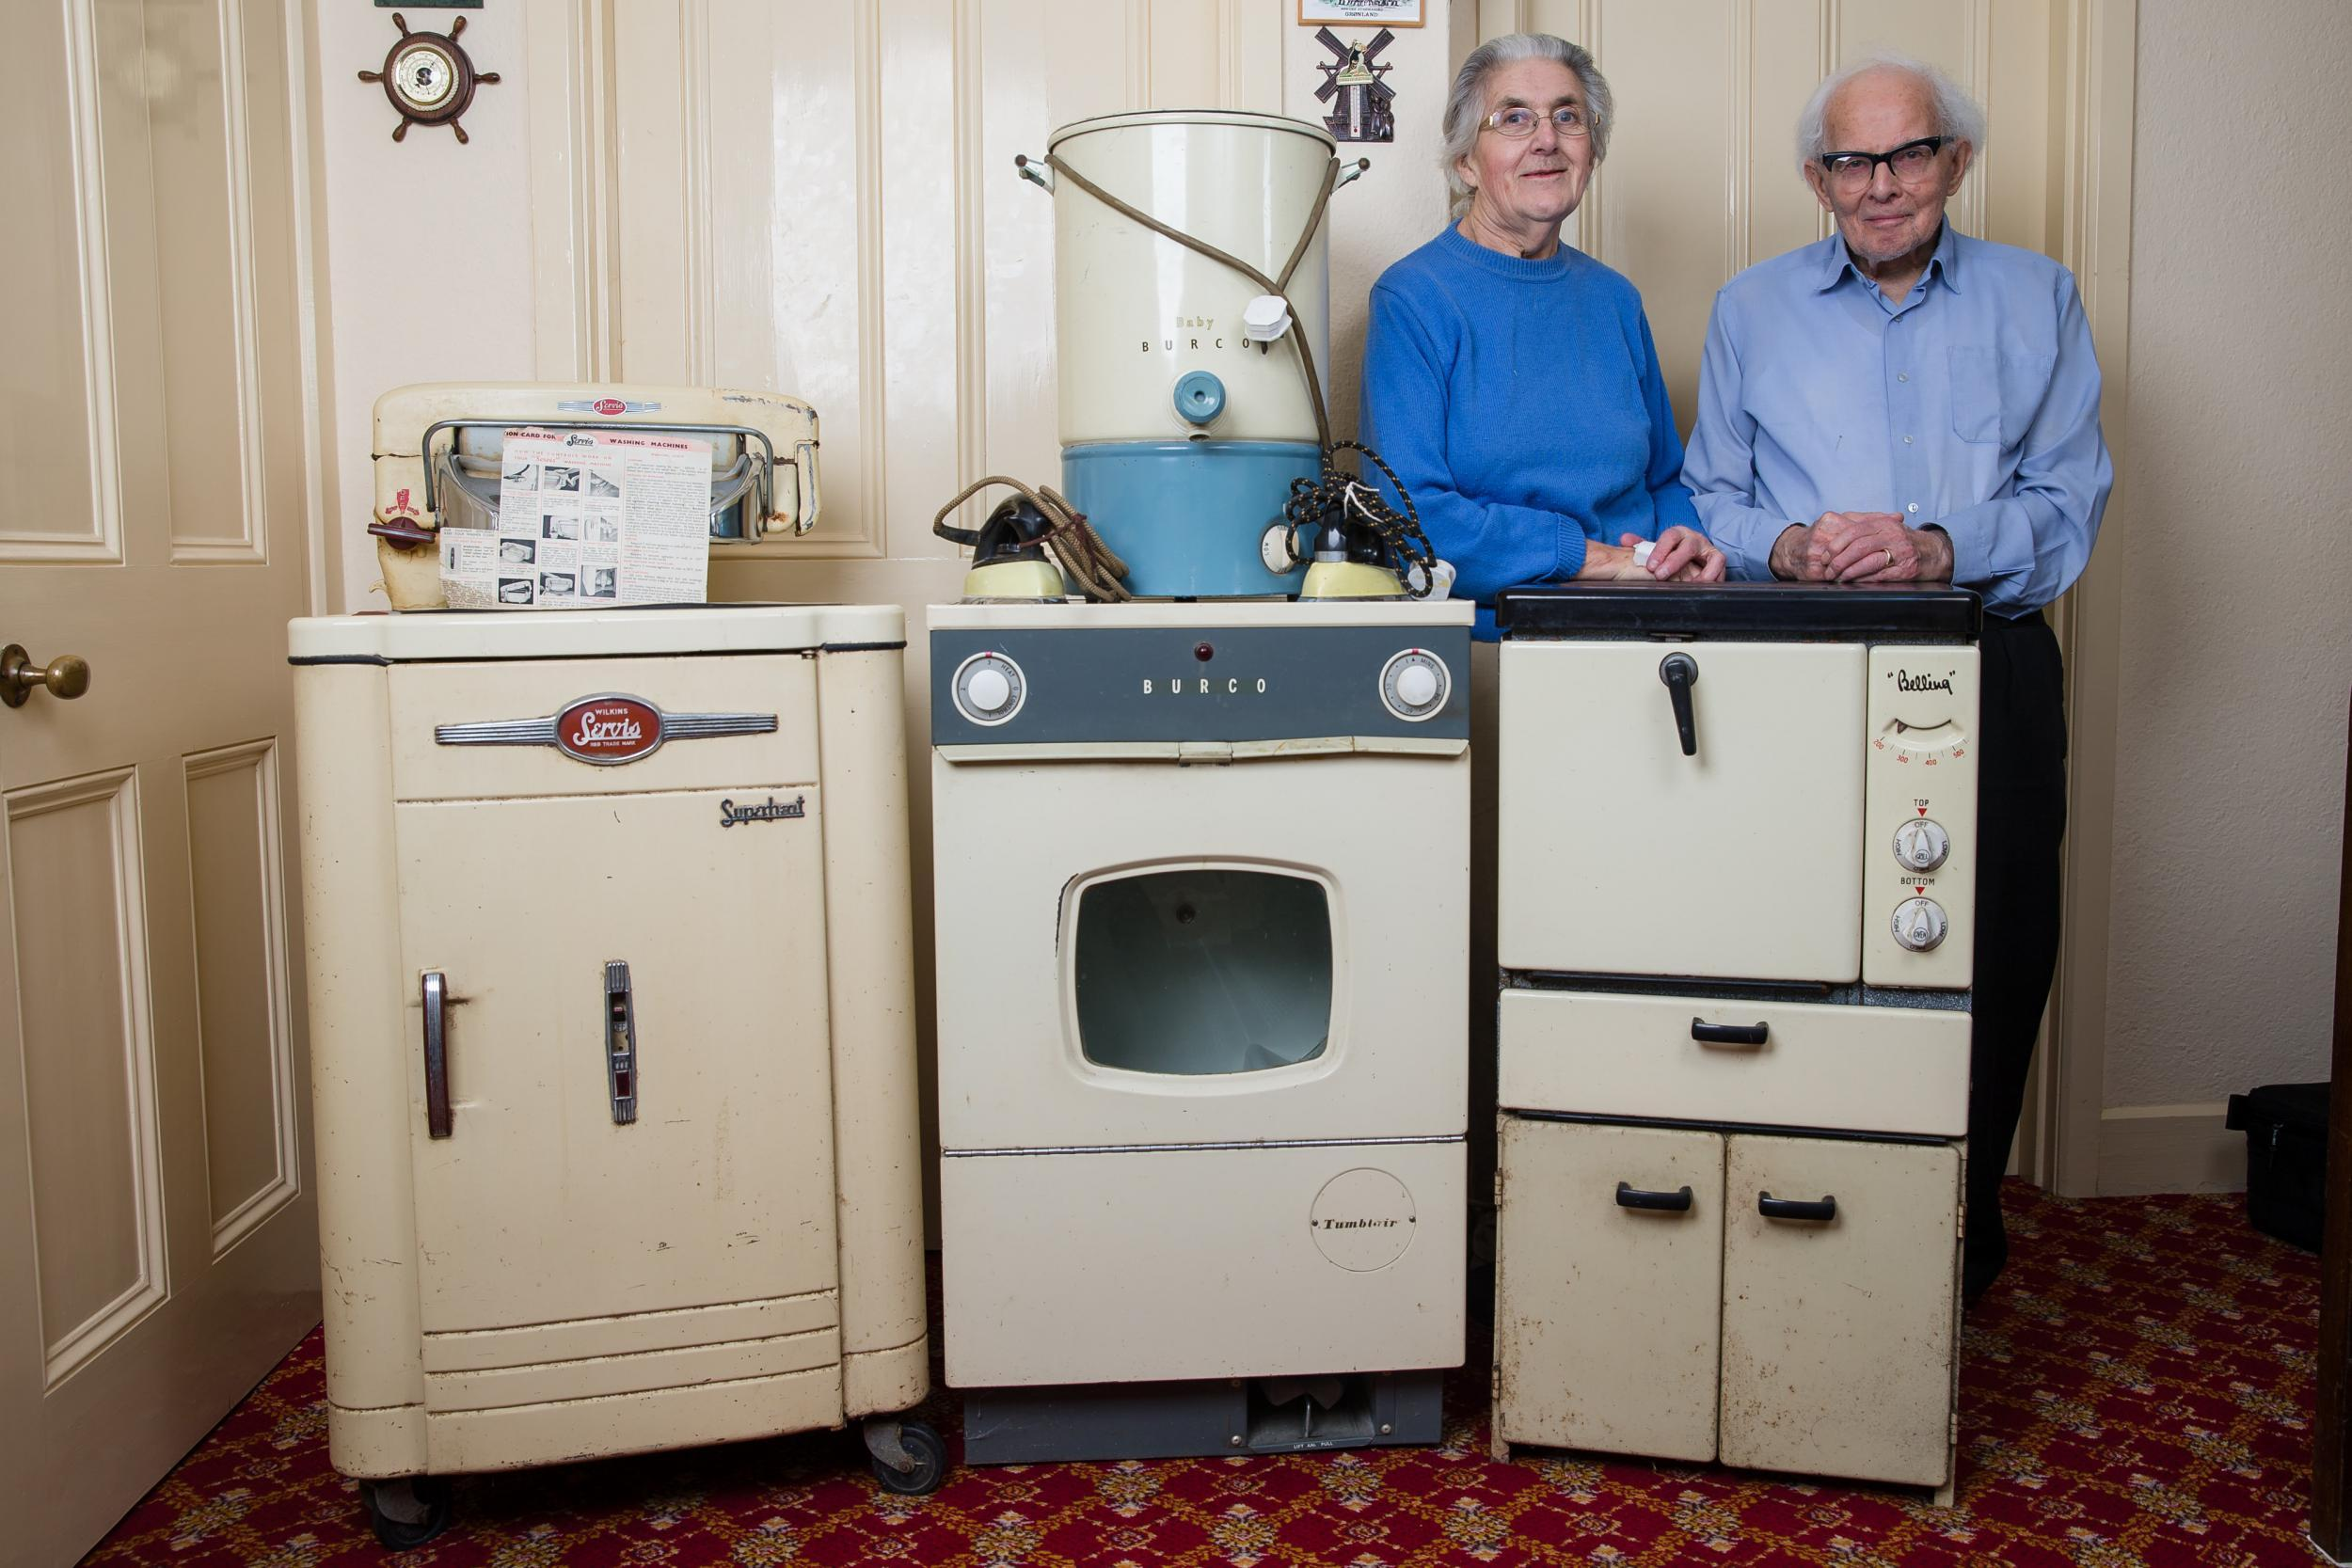 This is incredible - household appliances of the 50s continue to work